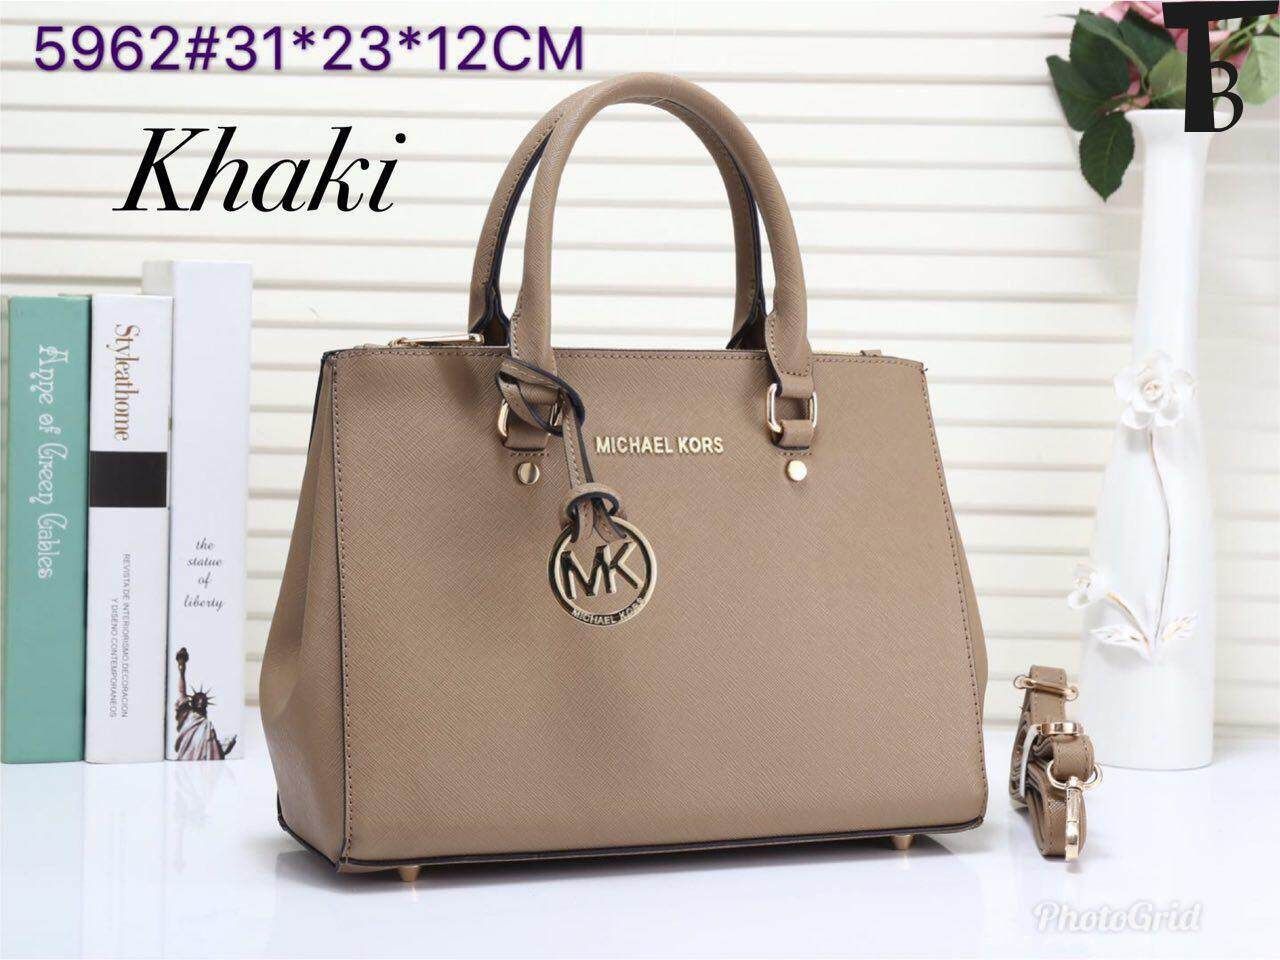 Michael Kors Bags For The Best Price In Malaysia Sutton Medium Bag